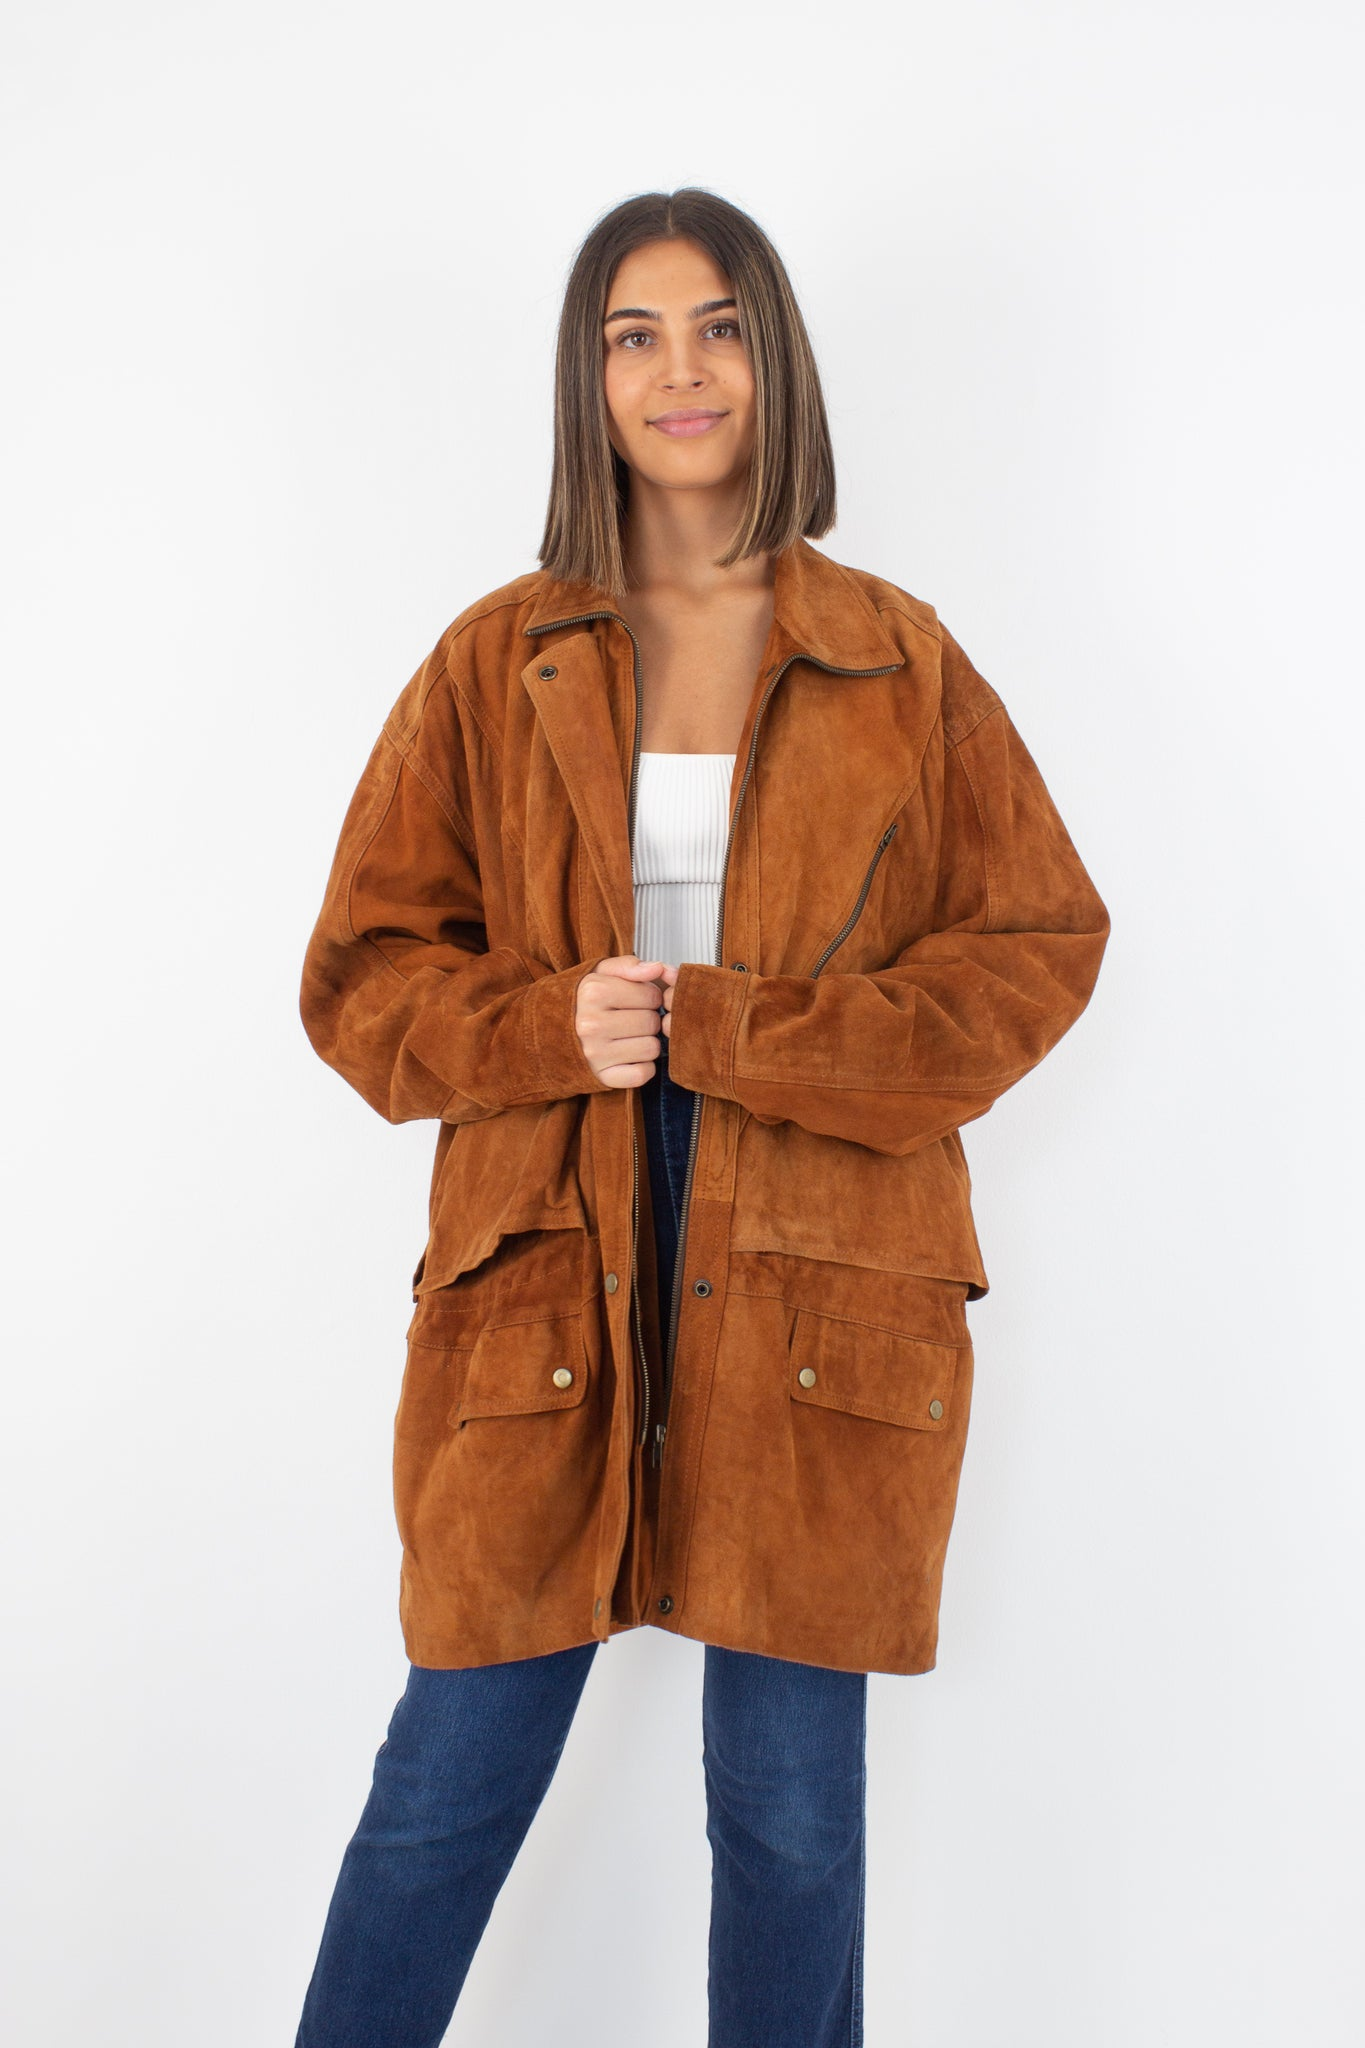 Oversized Brown Suede Leather Jacket - Unisex - L/XL